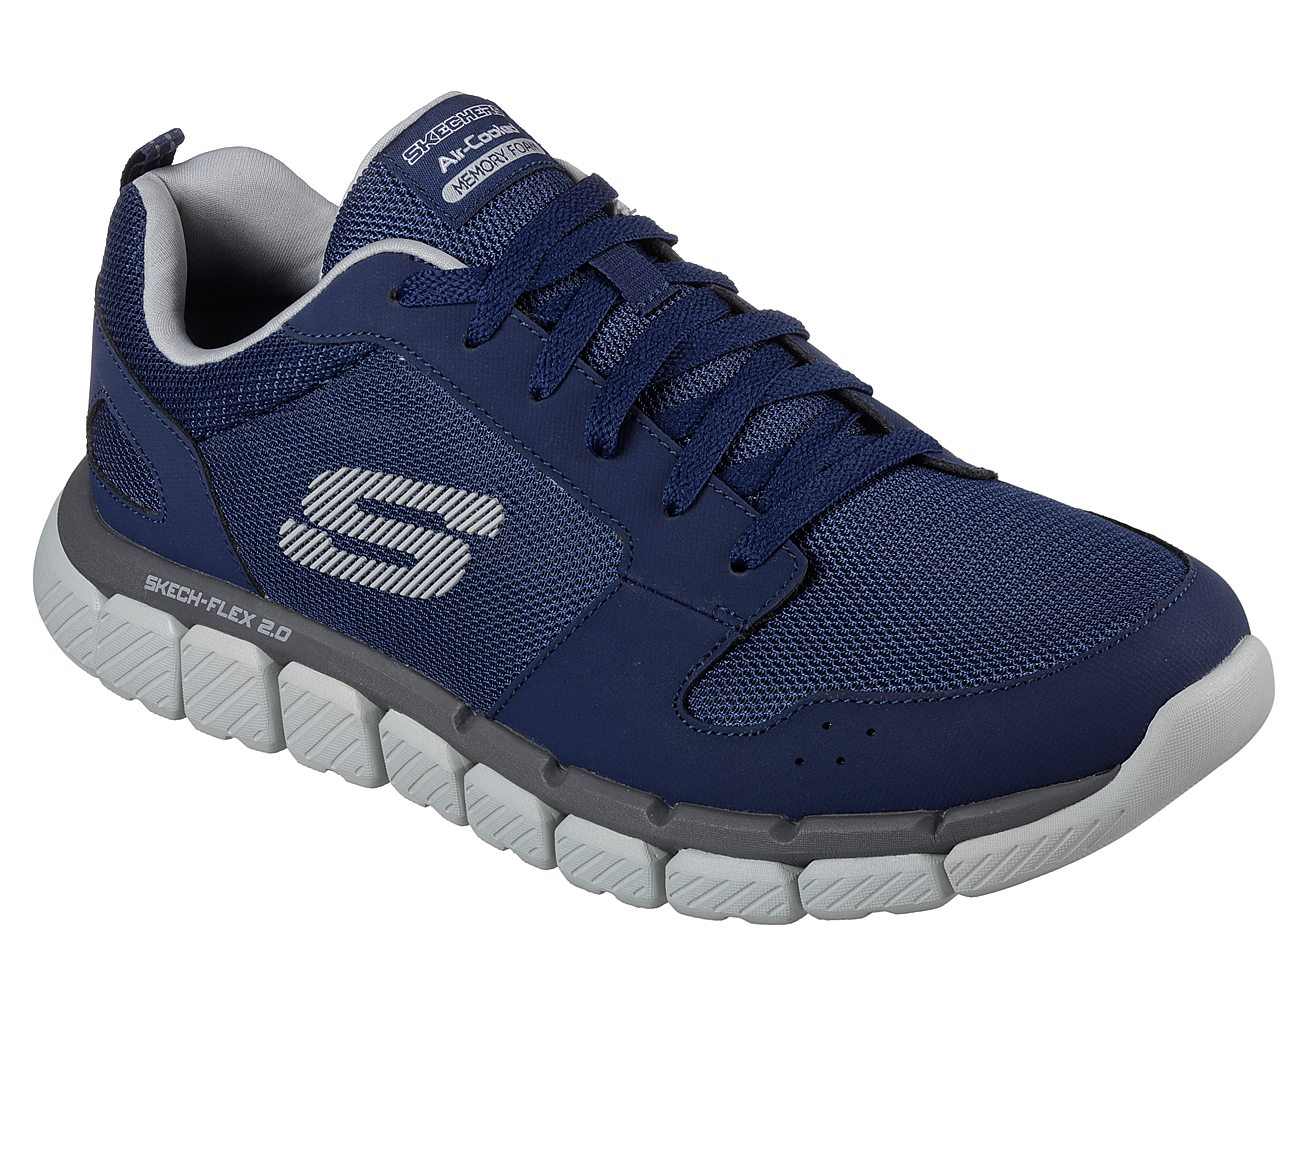 skechers relaxed fit skech flex men's memory foam shoes